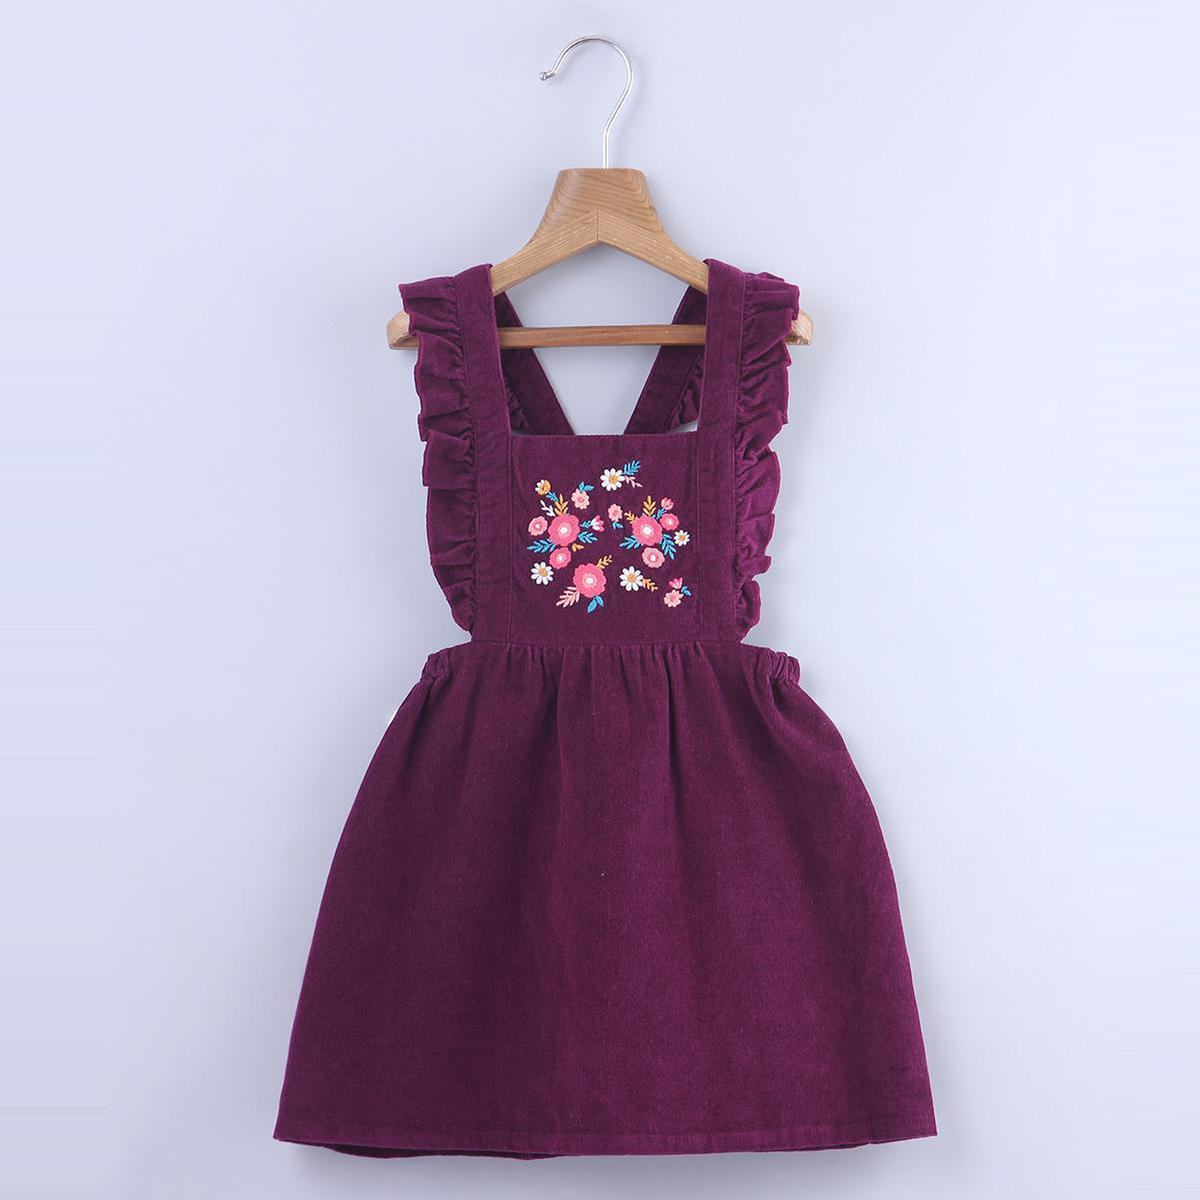 Beebay - Purple Colored Floral Embroidered Ruffle Pinafore Cotton Dress For Infants Girls